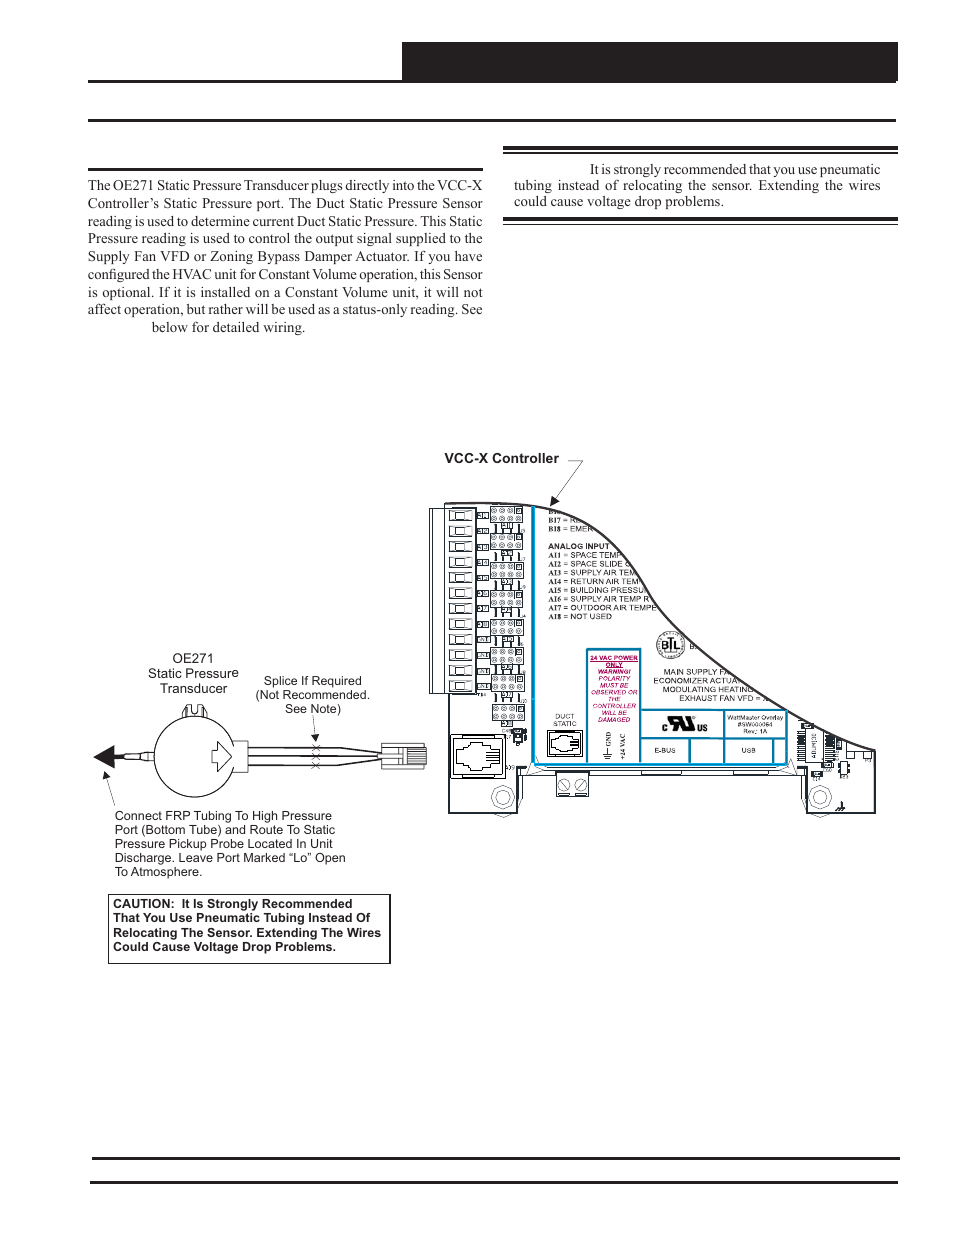 Vcc-x controller wiring, Static pressure transducer wiring | Orion System  VCC-X Controller User Manual | Page 33 / 120